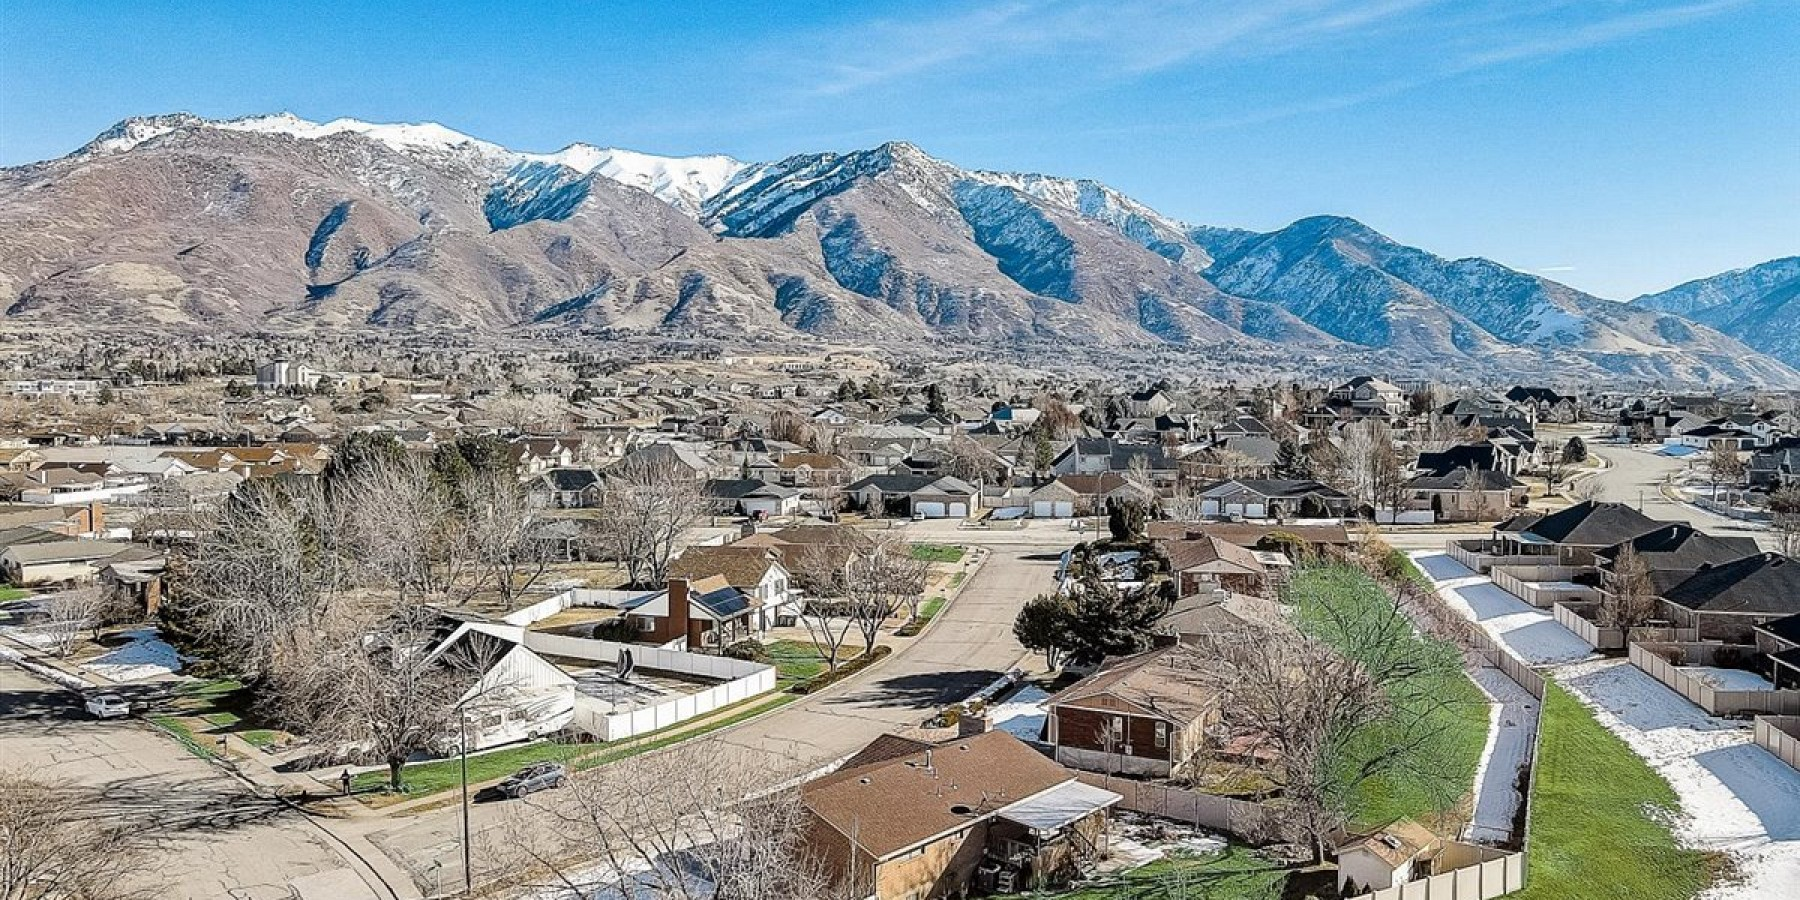 813 East 5750 South, Ogden, UT 84405